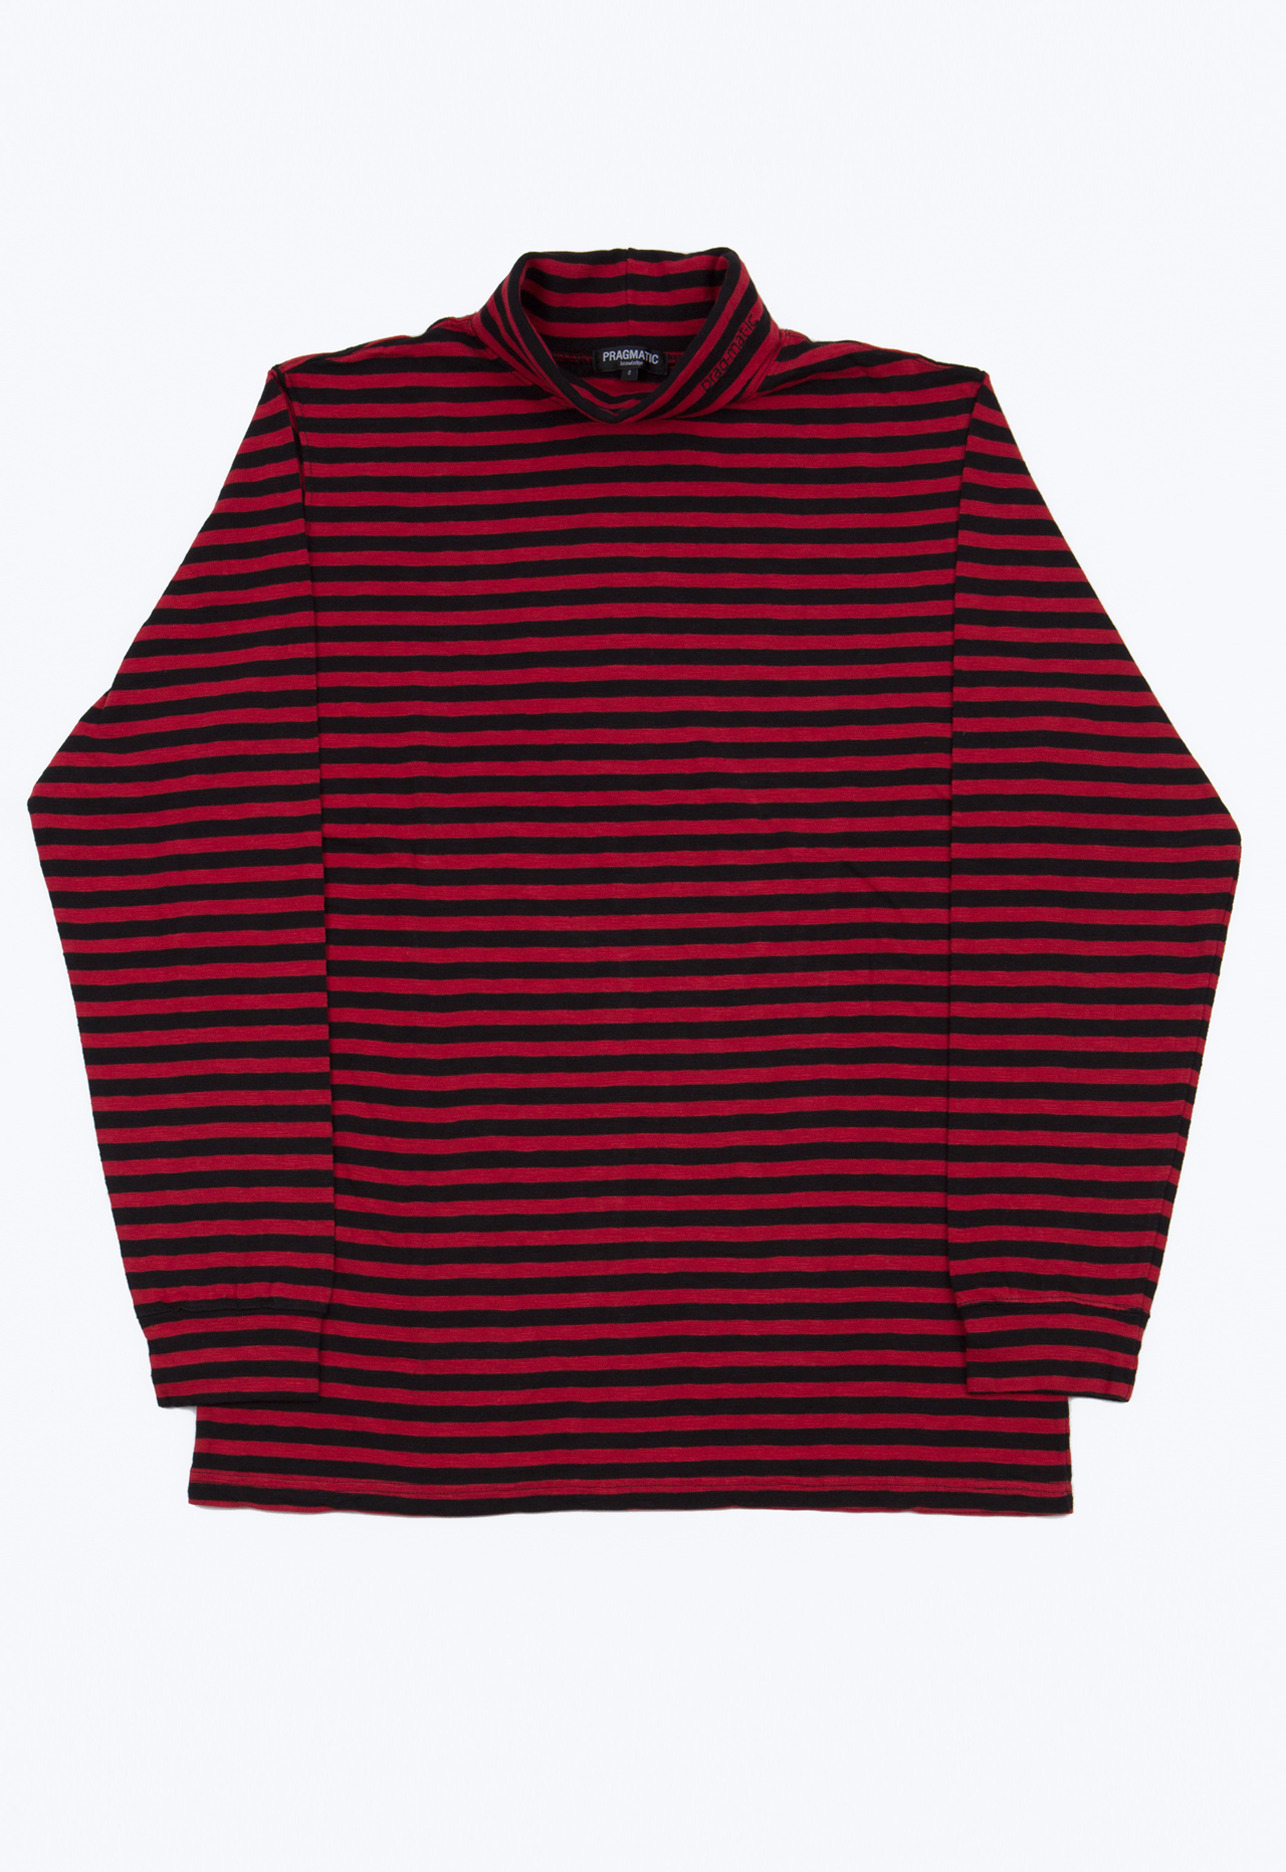 TURTLE NECK RED